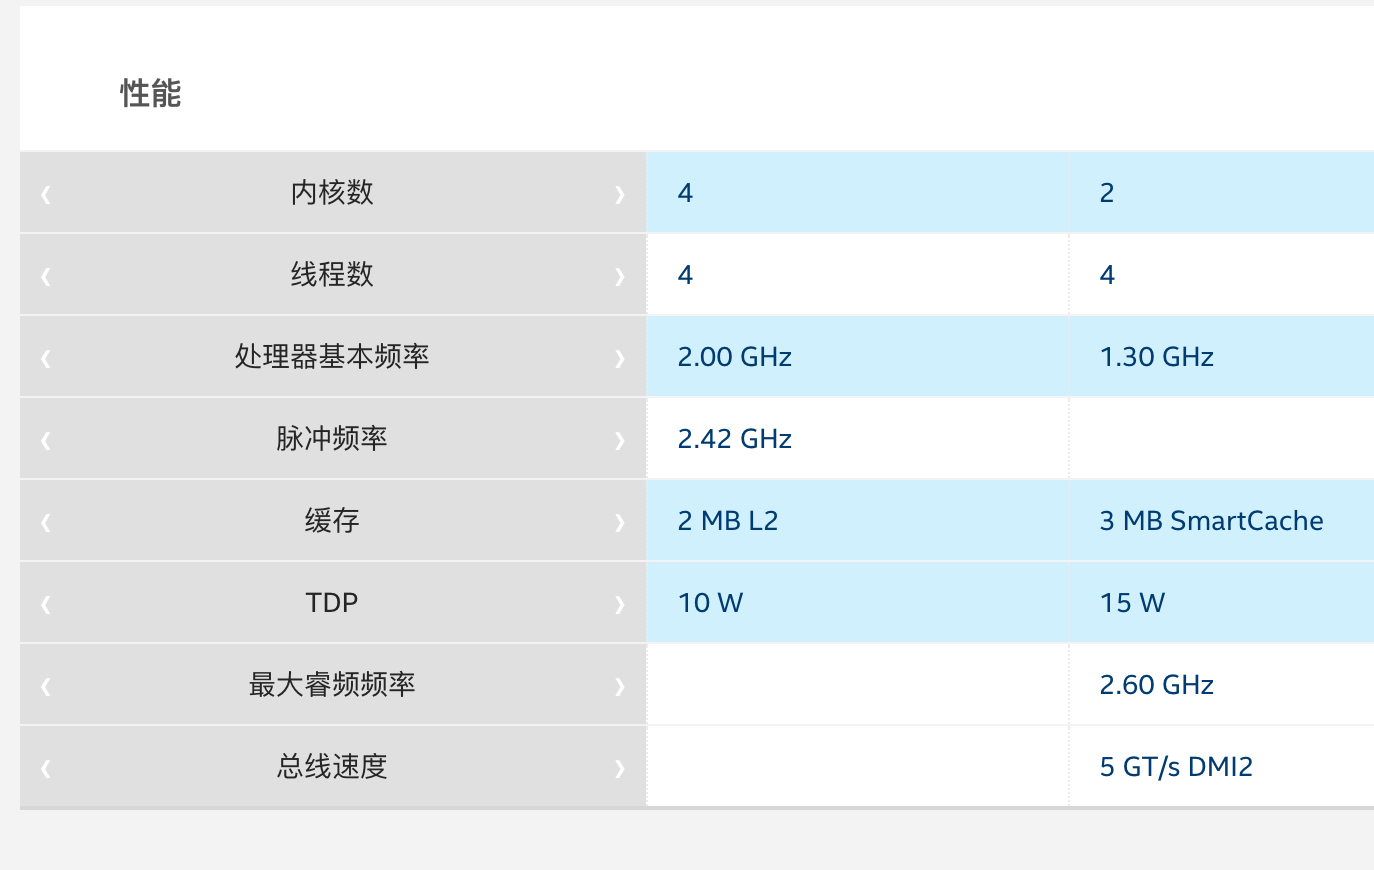 20190726-140213.png